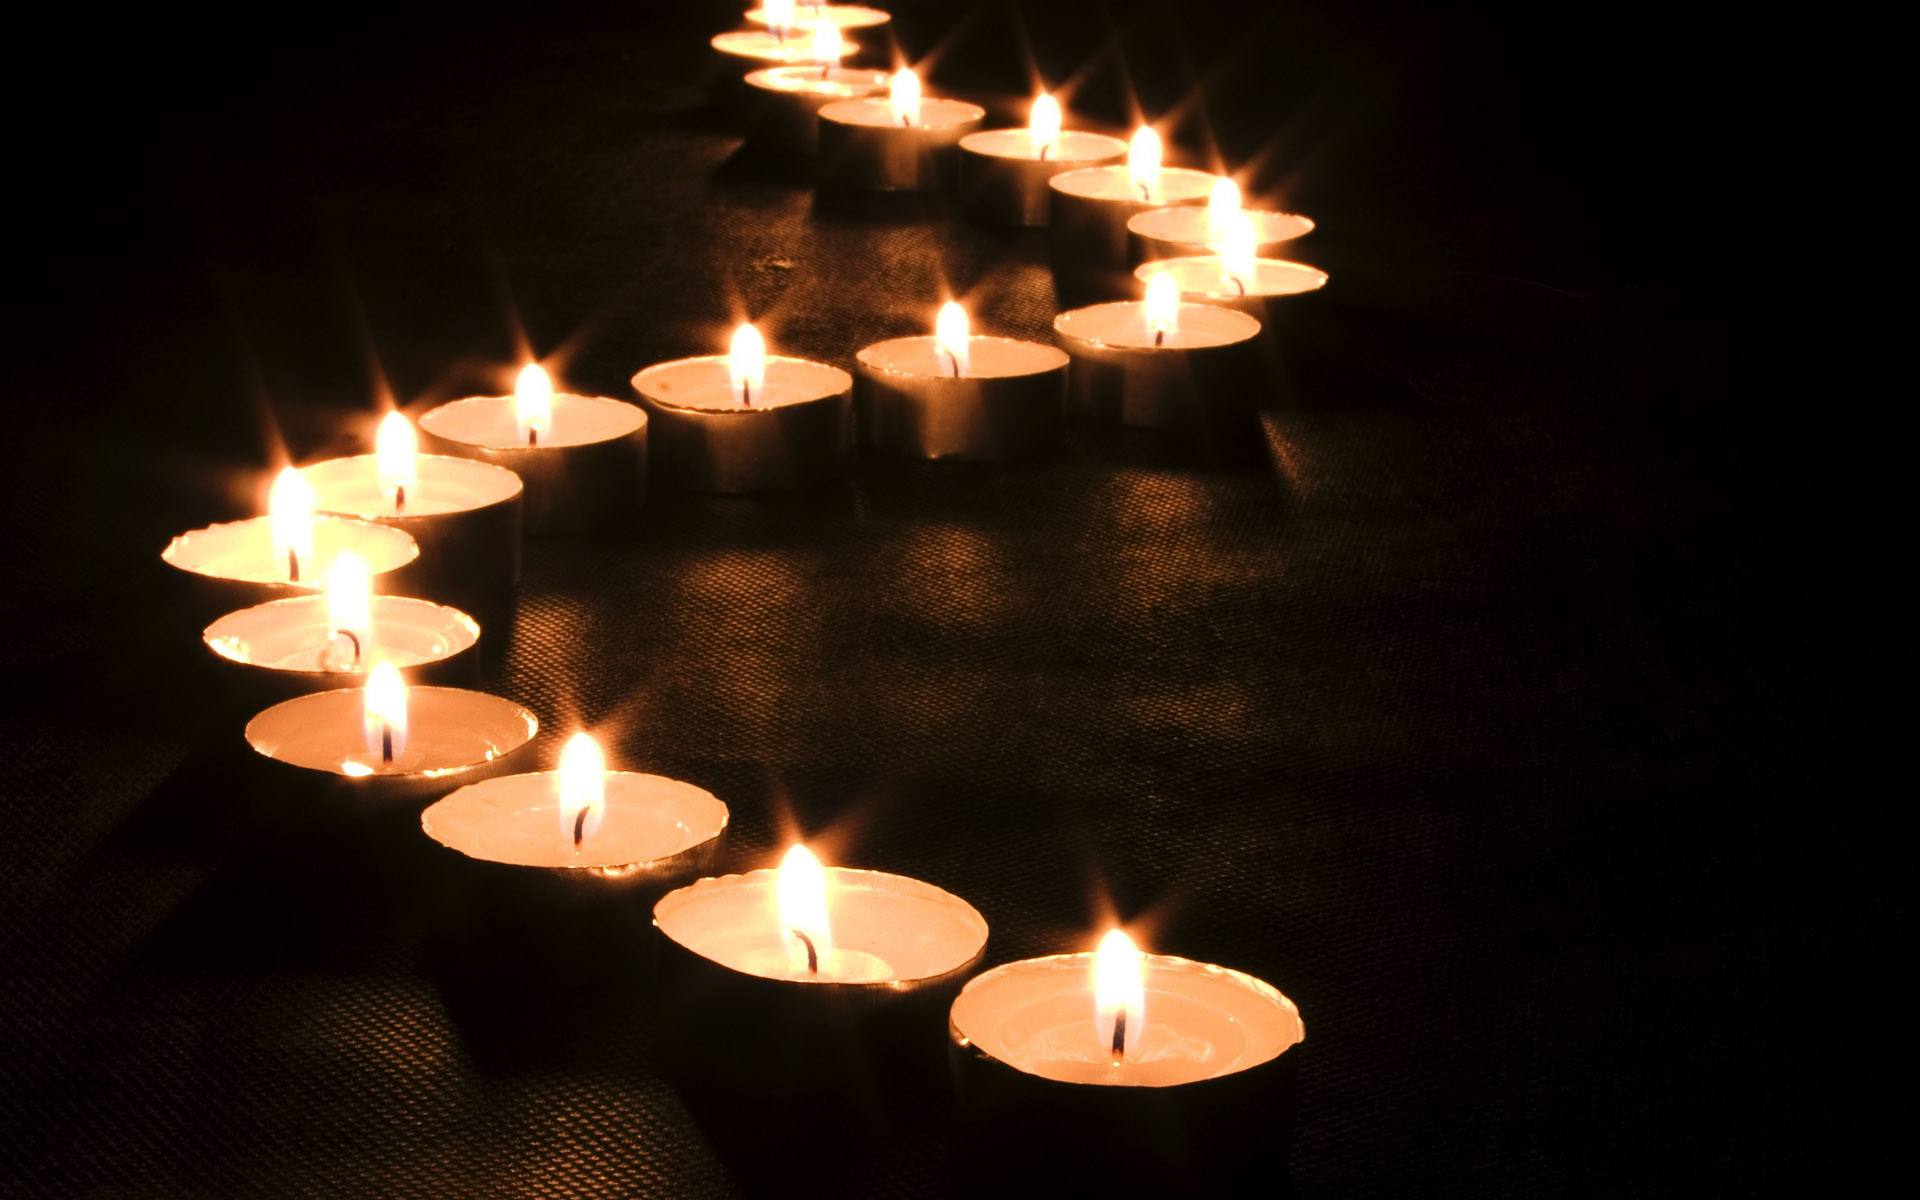 Warm and Love Candle HD Wallpaper